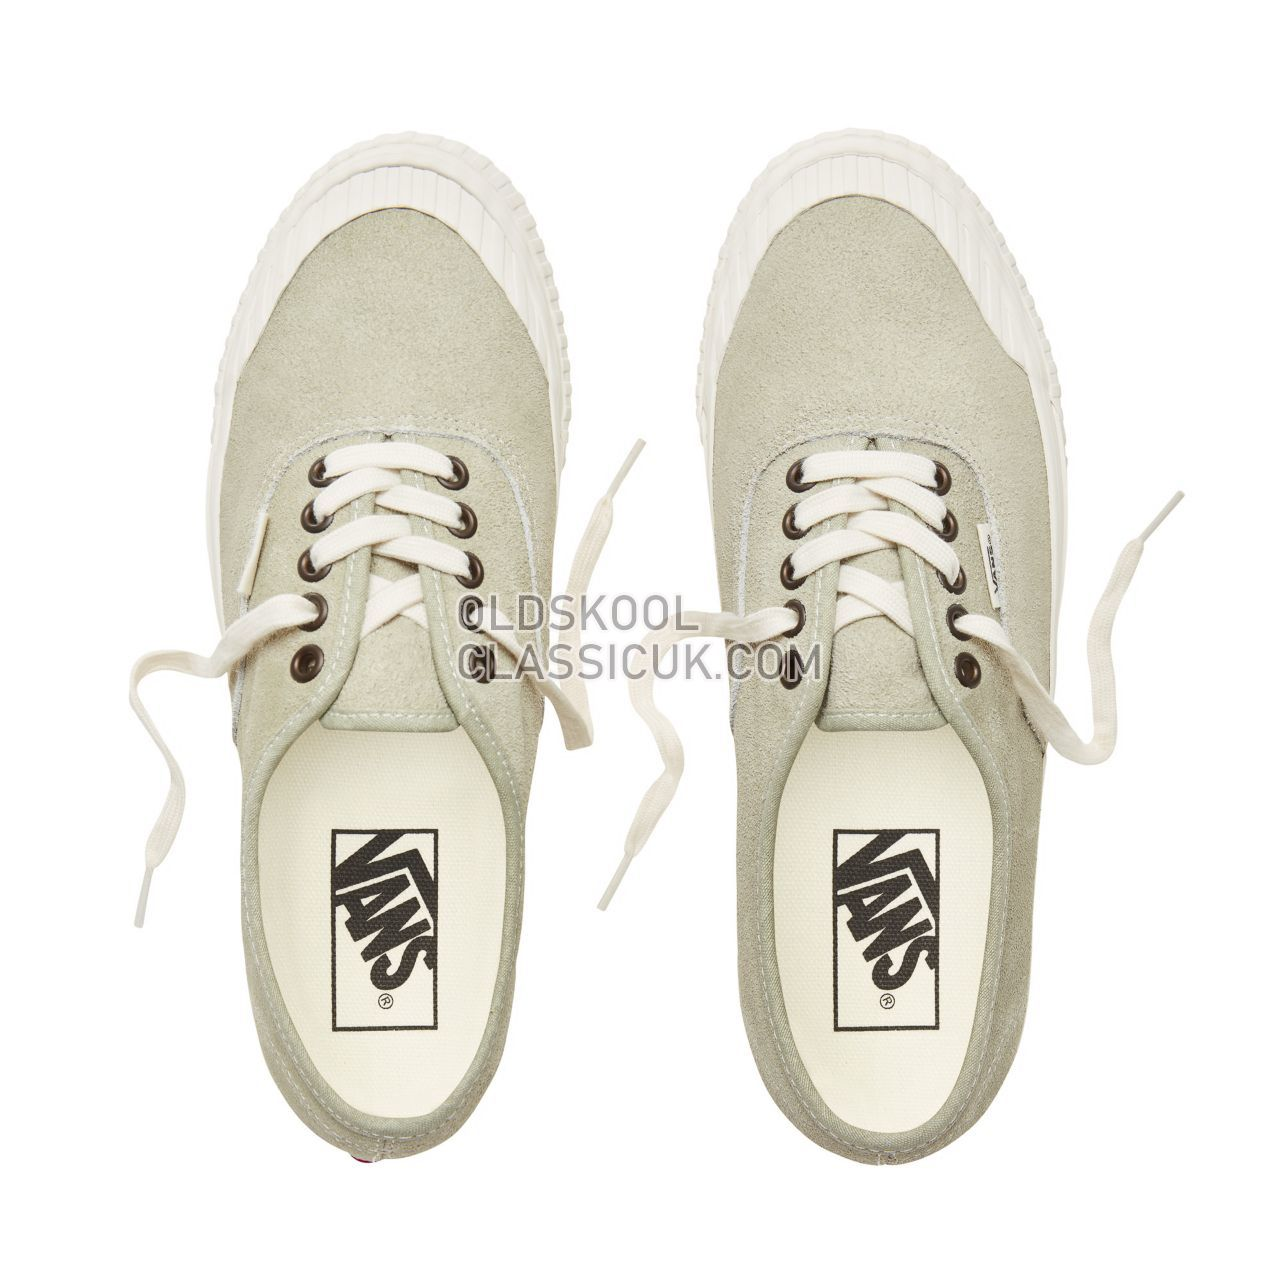 Vans Suede Vintage Military Authentic 138 Sneakers Mens (Vintage Military) Desert Sage VA3TK6U68 Shoes